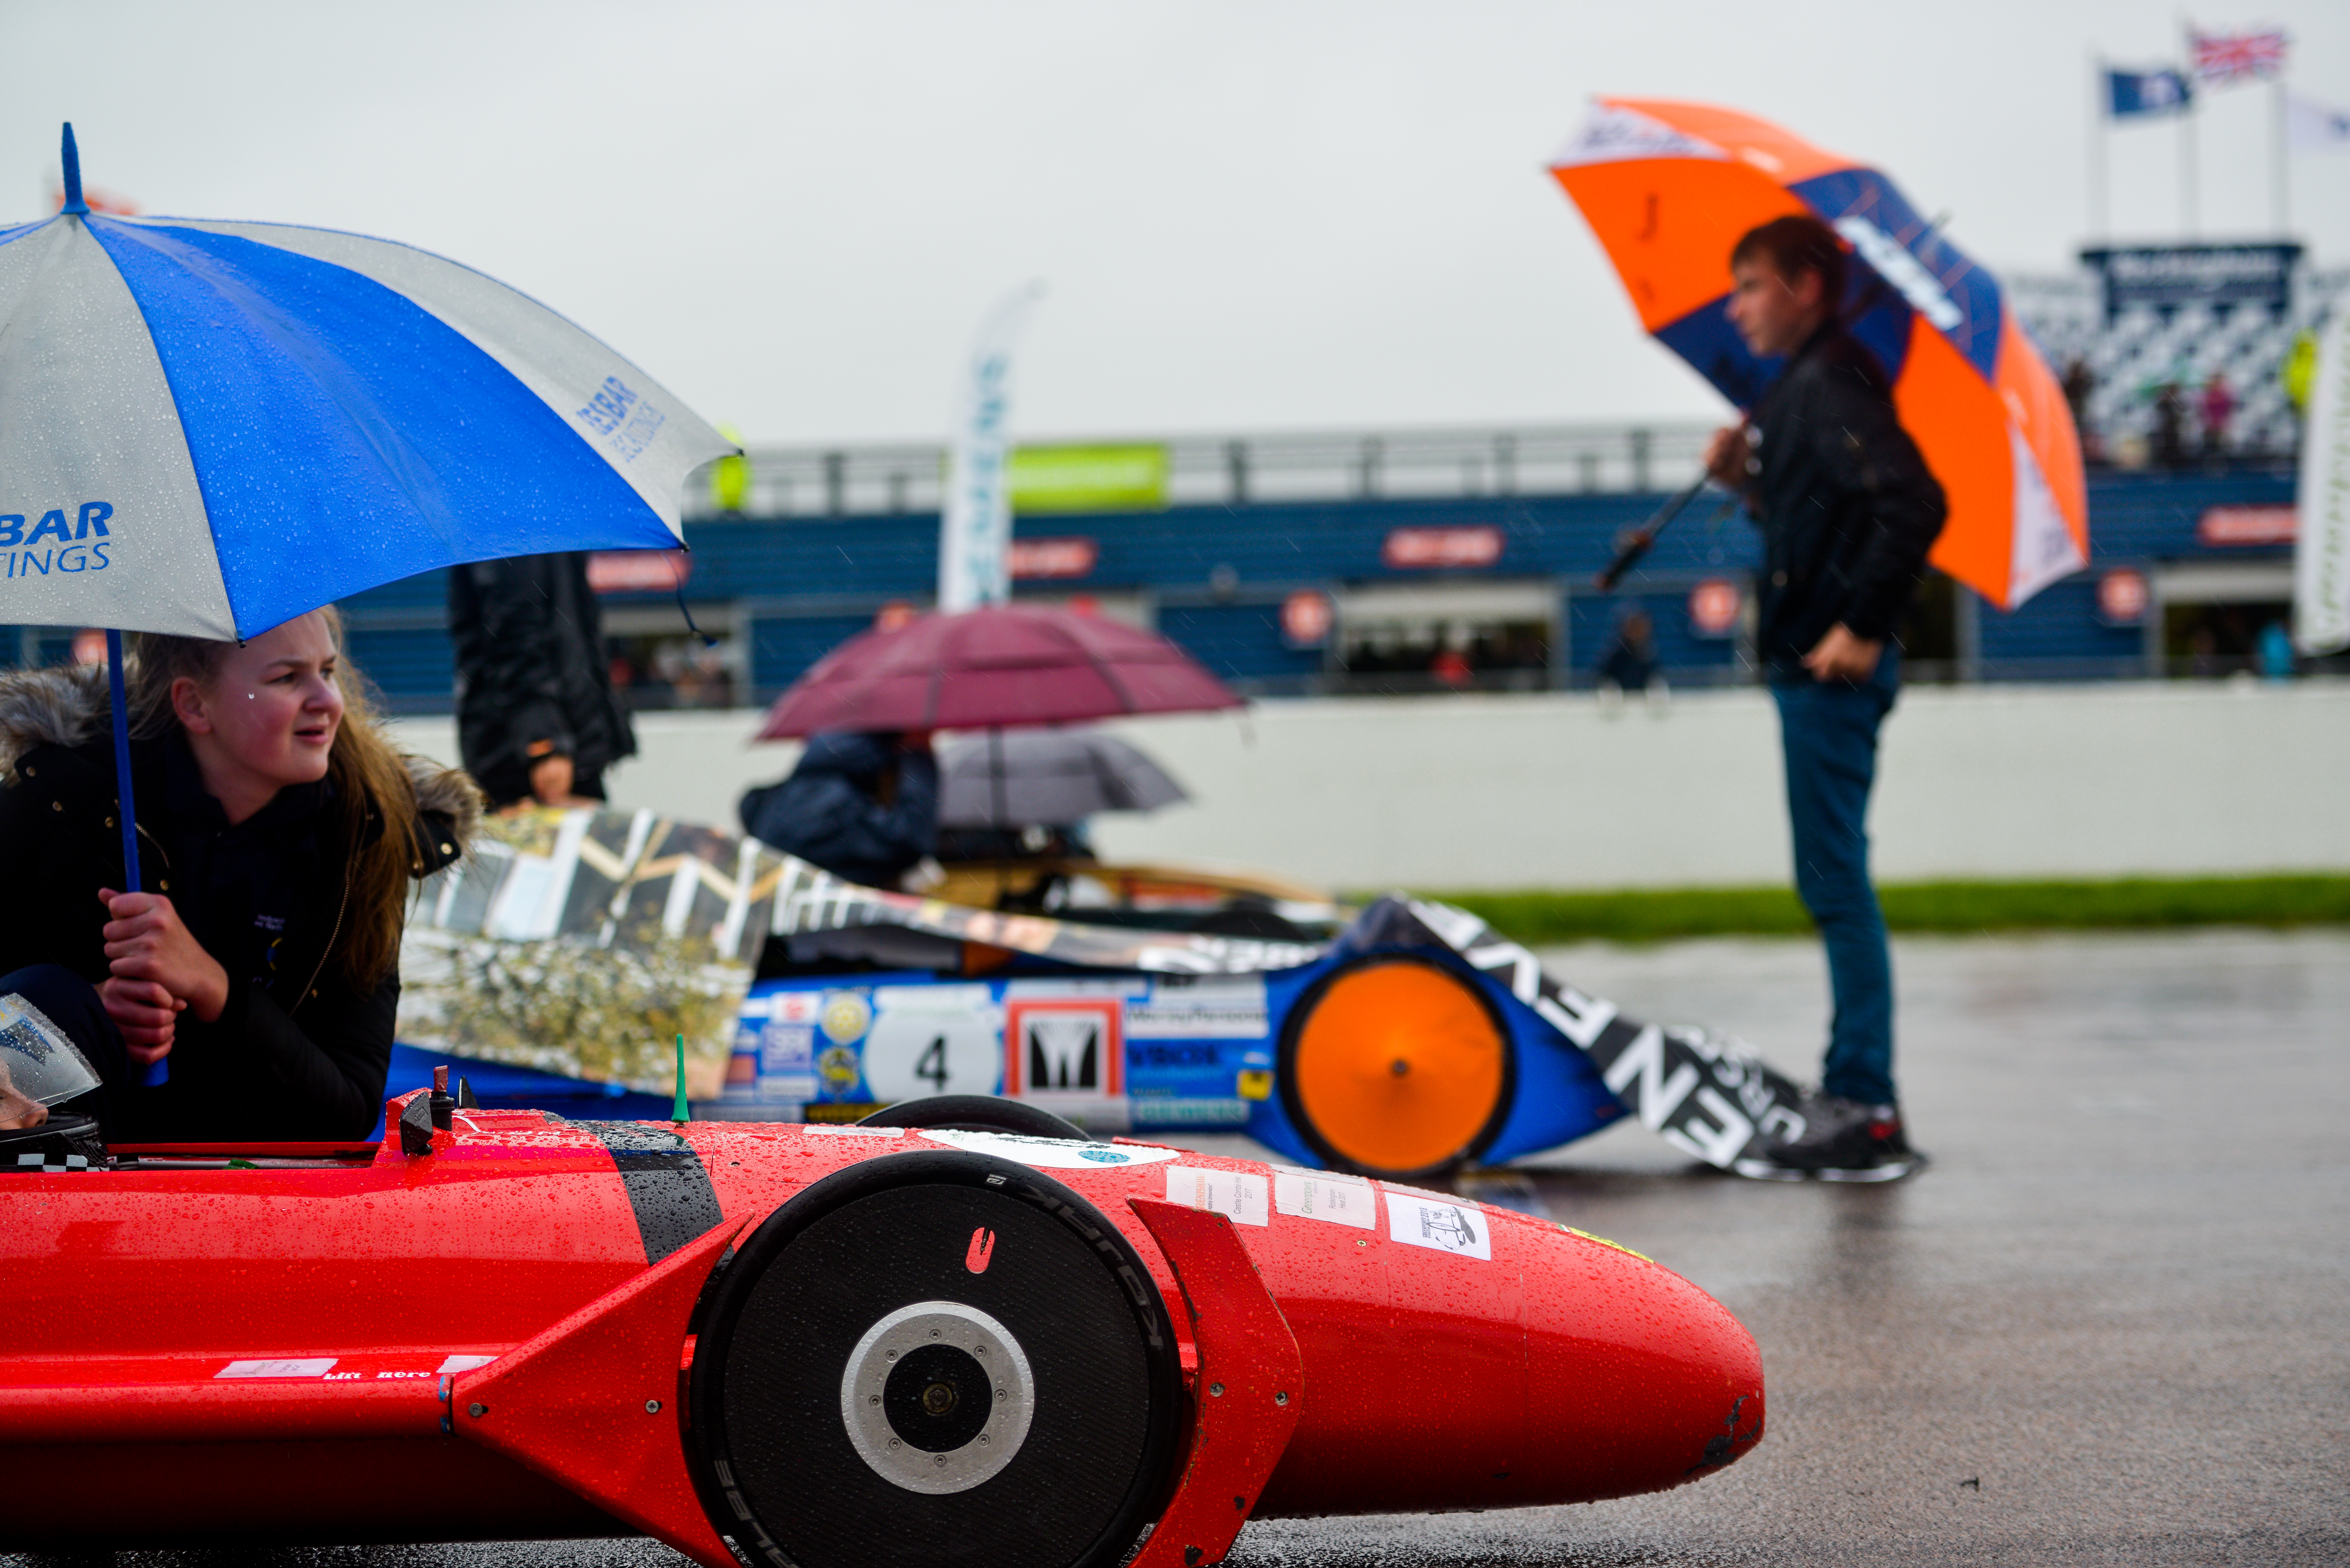 Greenpower-International-Final-2018-NatTwiss-0530.jpg